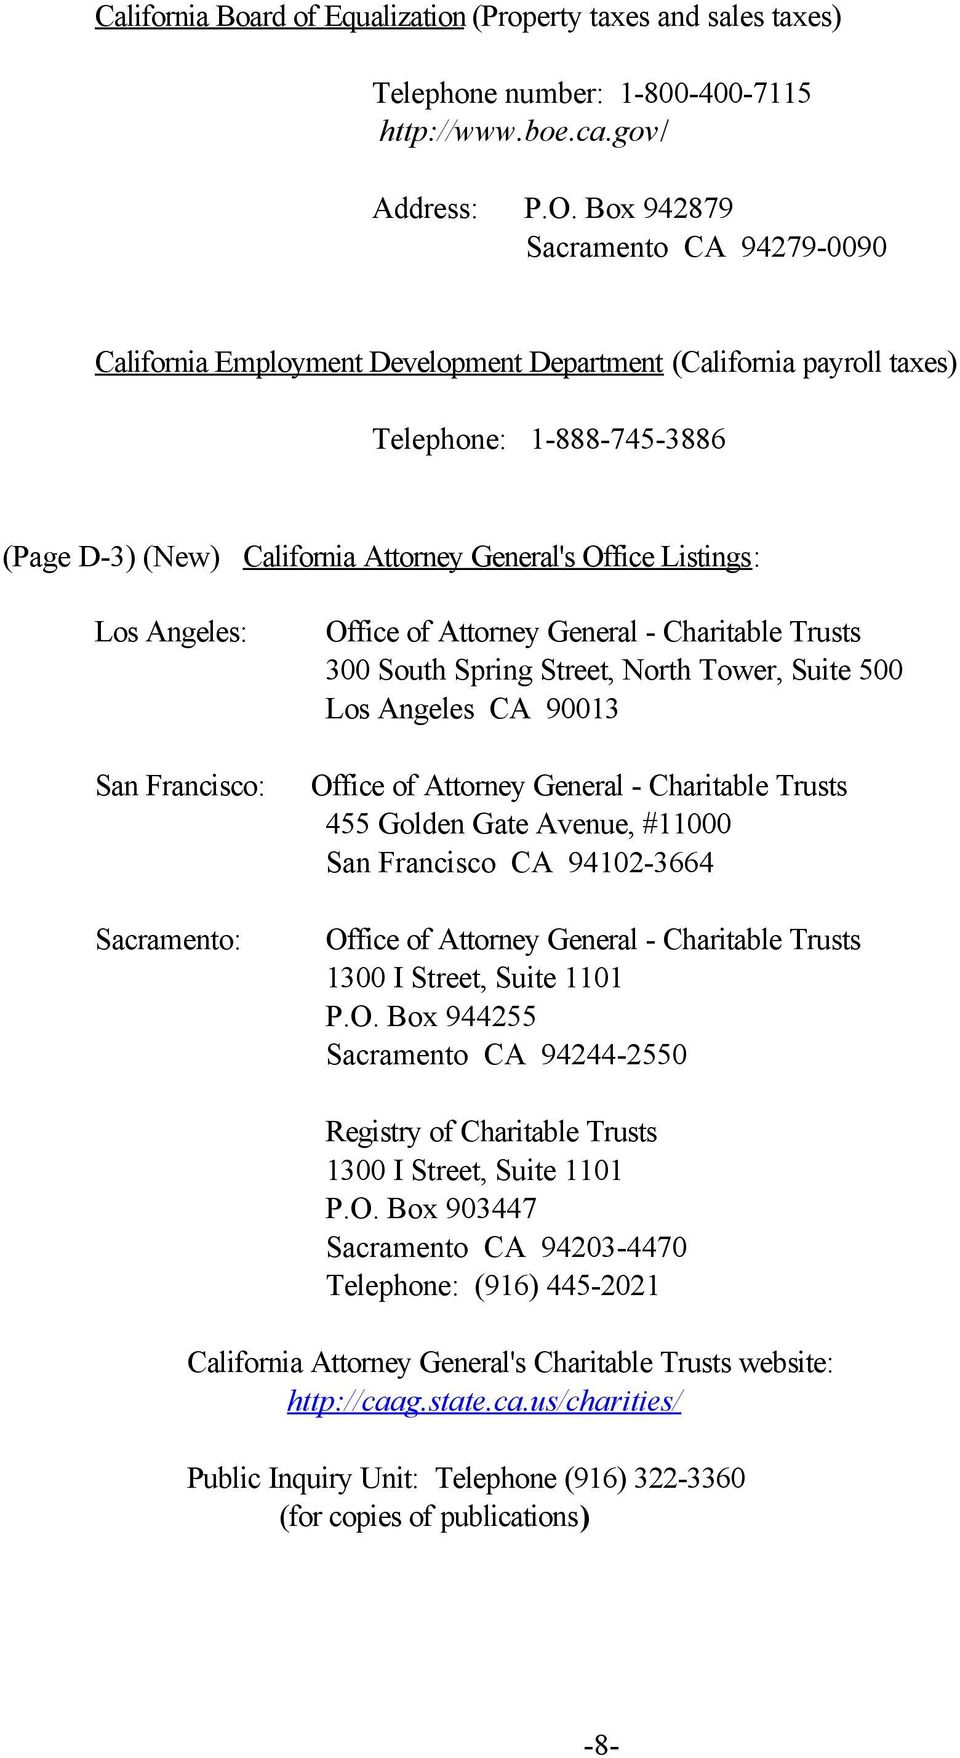 Los Angeles: Office of Attorney General - Charitable Trusts 300 South Spring Street, North Tower, Suite 500 Los Angeles CA 90013 San Francisco: Office of Attorney General - Charitable Trusts 455